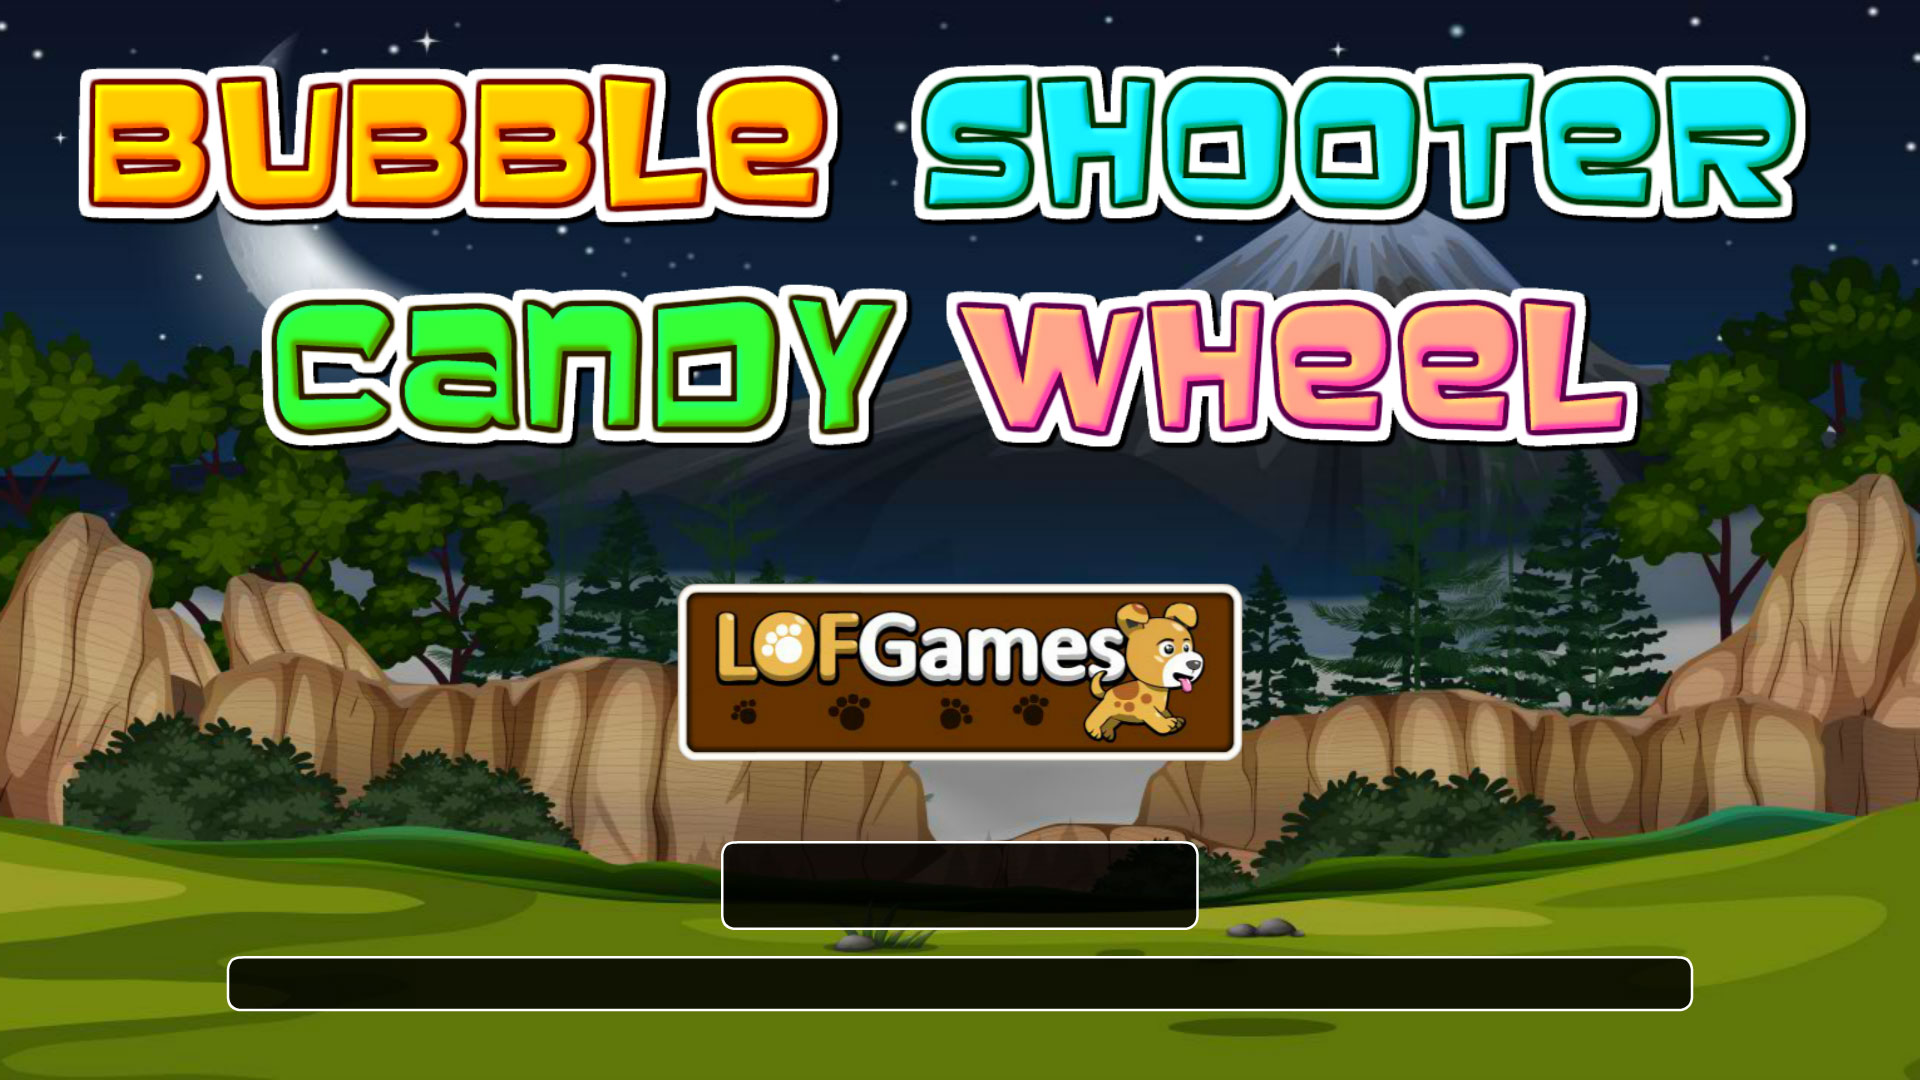 Bubble Shooter Candy Wheel | Ecaps Games | The Best Online